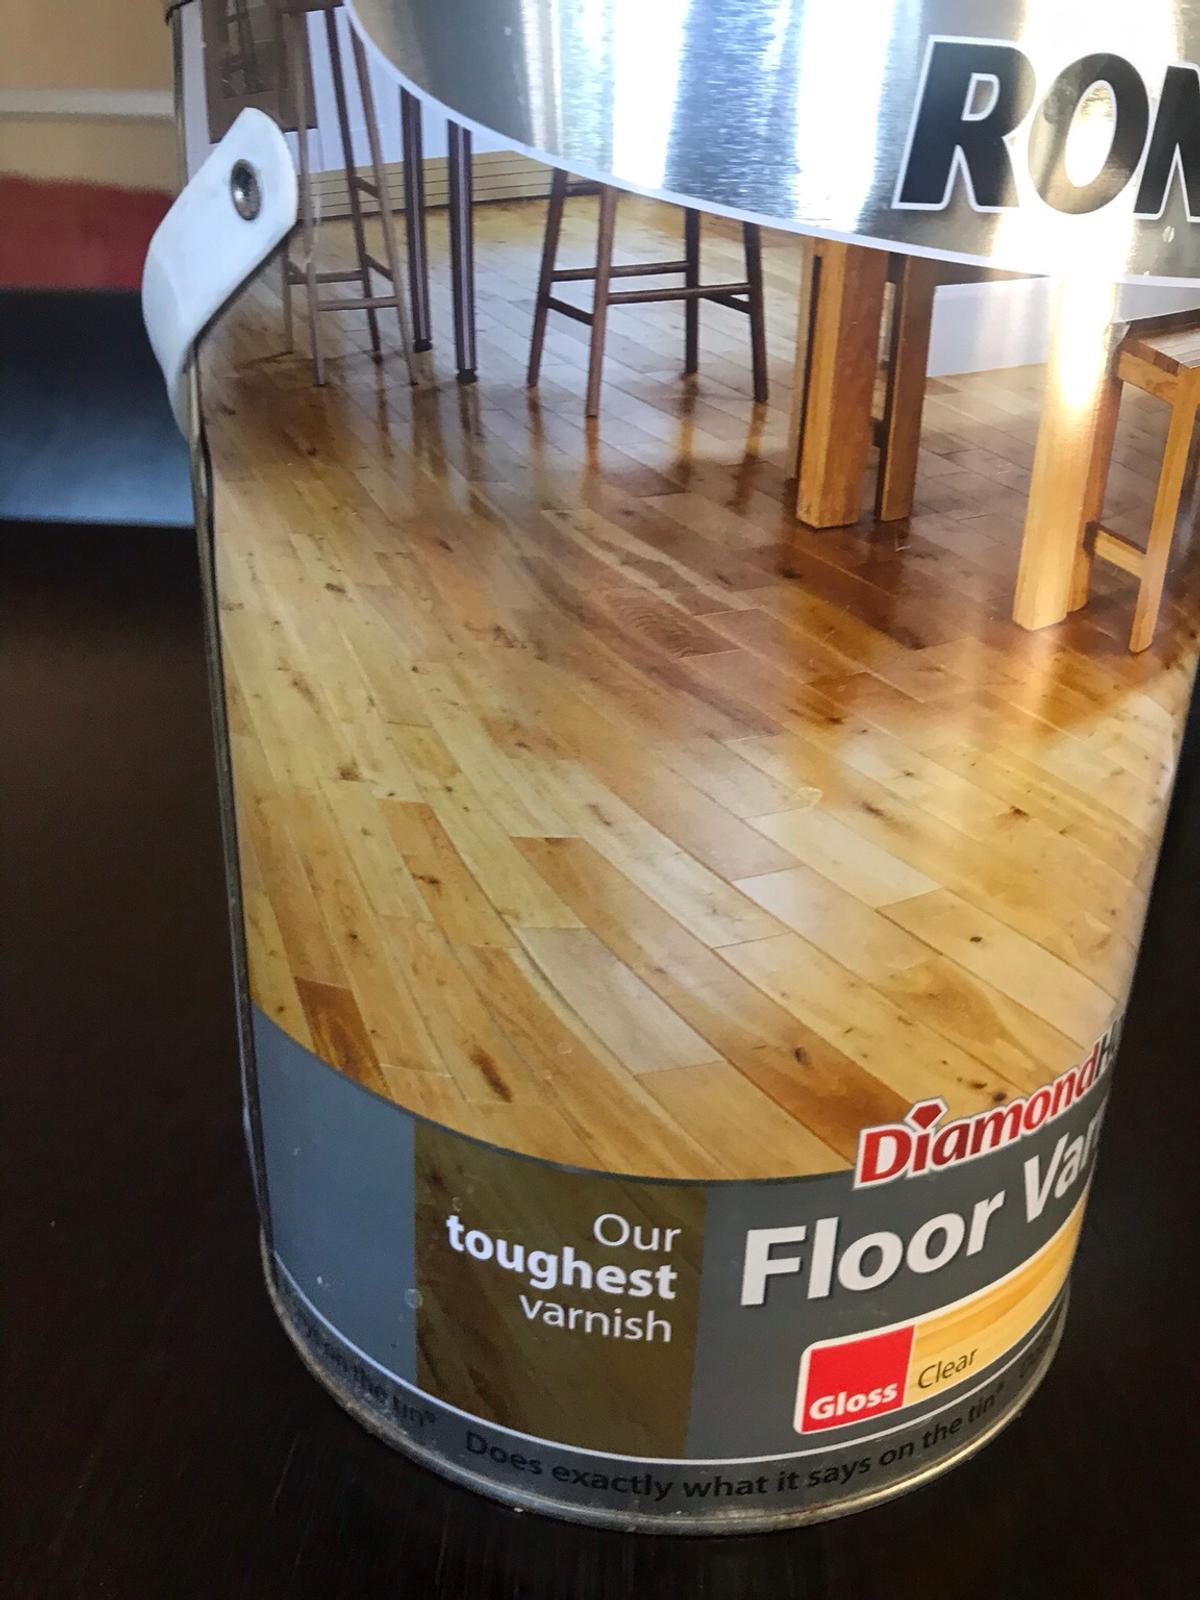 Ronseal Diamond Clear Floor Varnish 5litres In South Bucks For